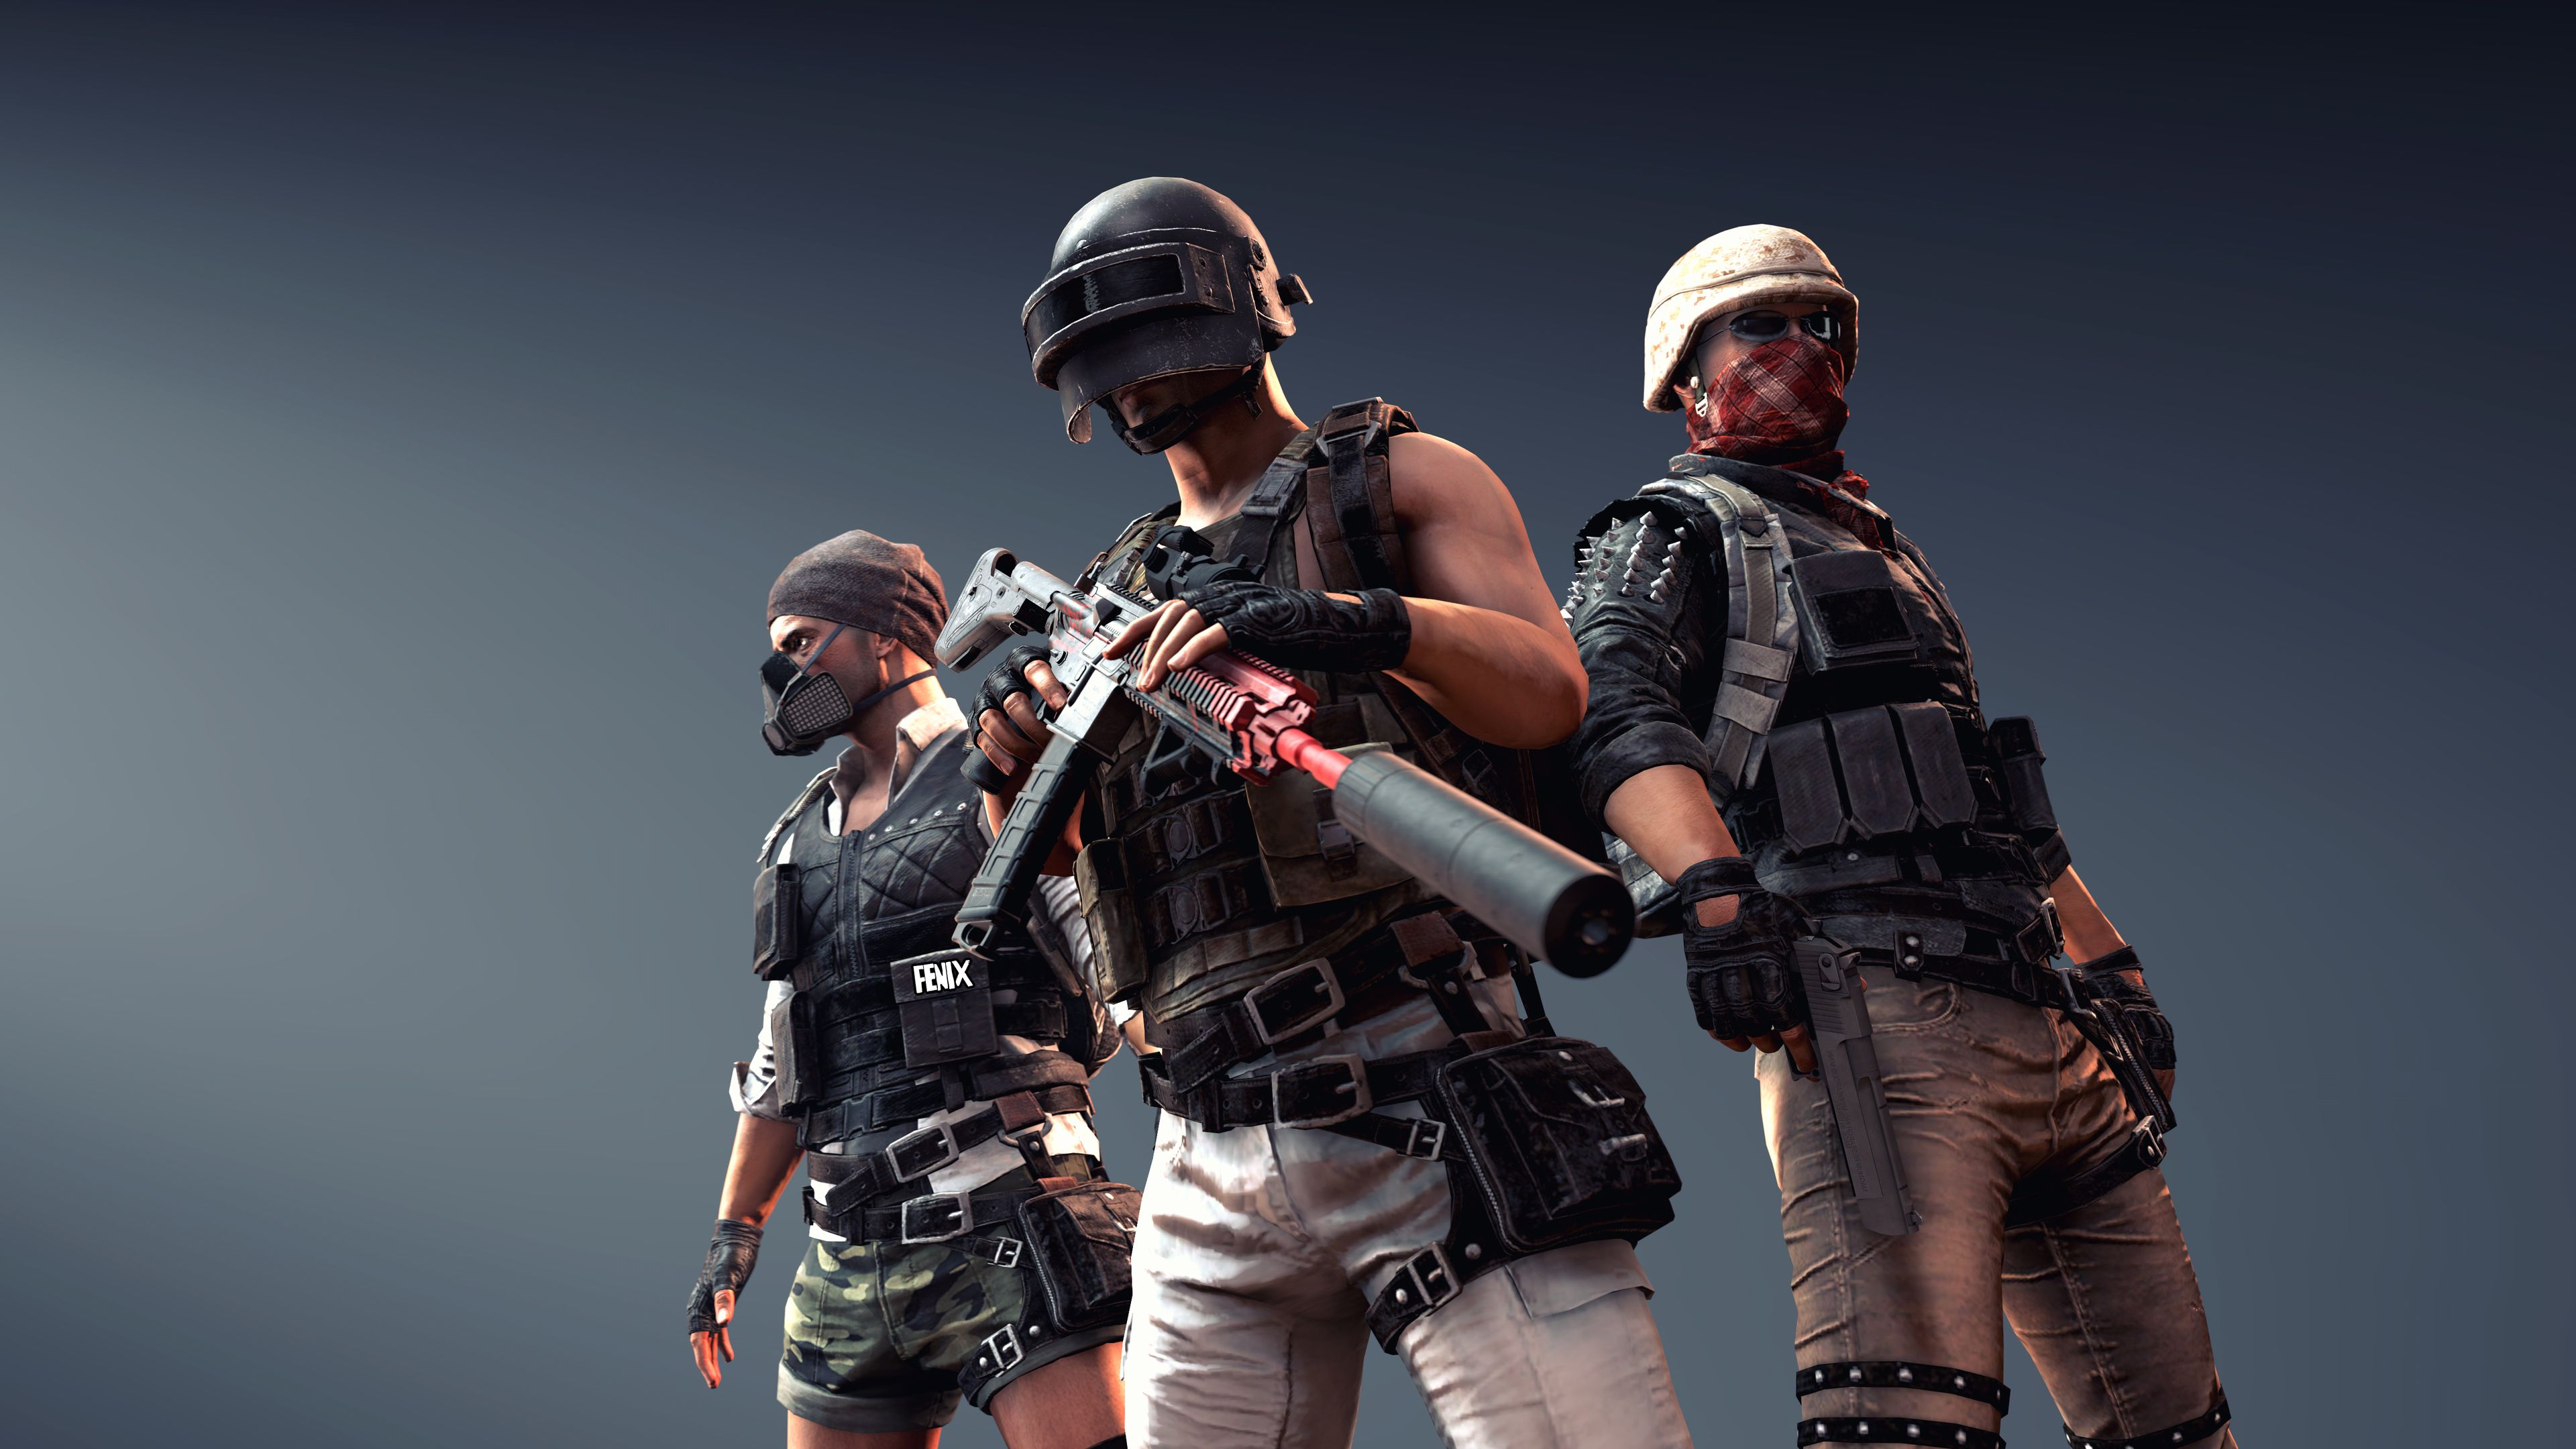 2019 Pubg Pubg Wallpapers Playerunknowns Battlegrounds Wallpapers Hd Wallpapers Games Wallpapers 5k Wallpapers Pc Desktop Wallpaper Hd Wallpaper Wallpaper